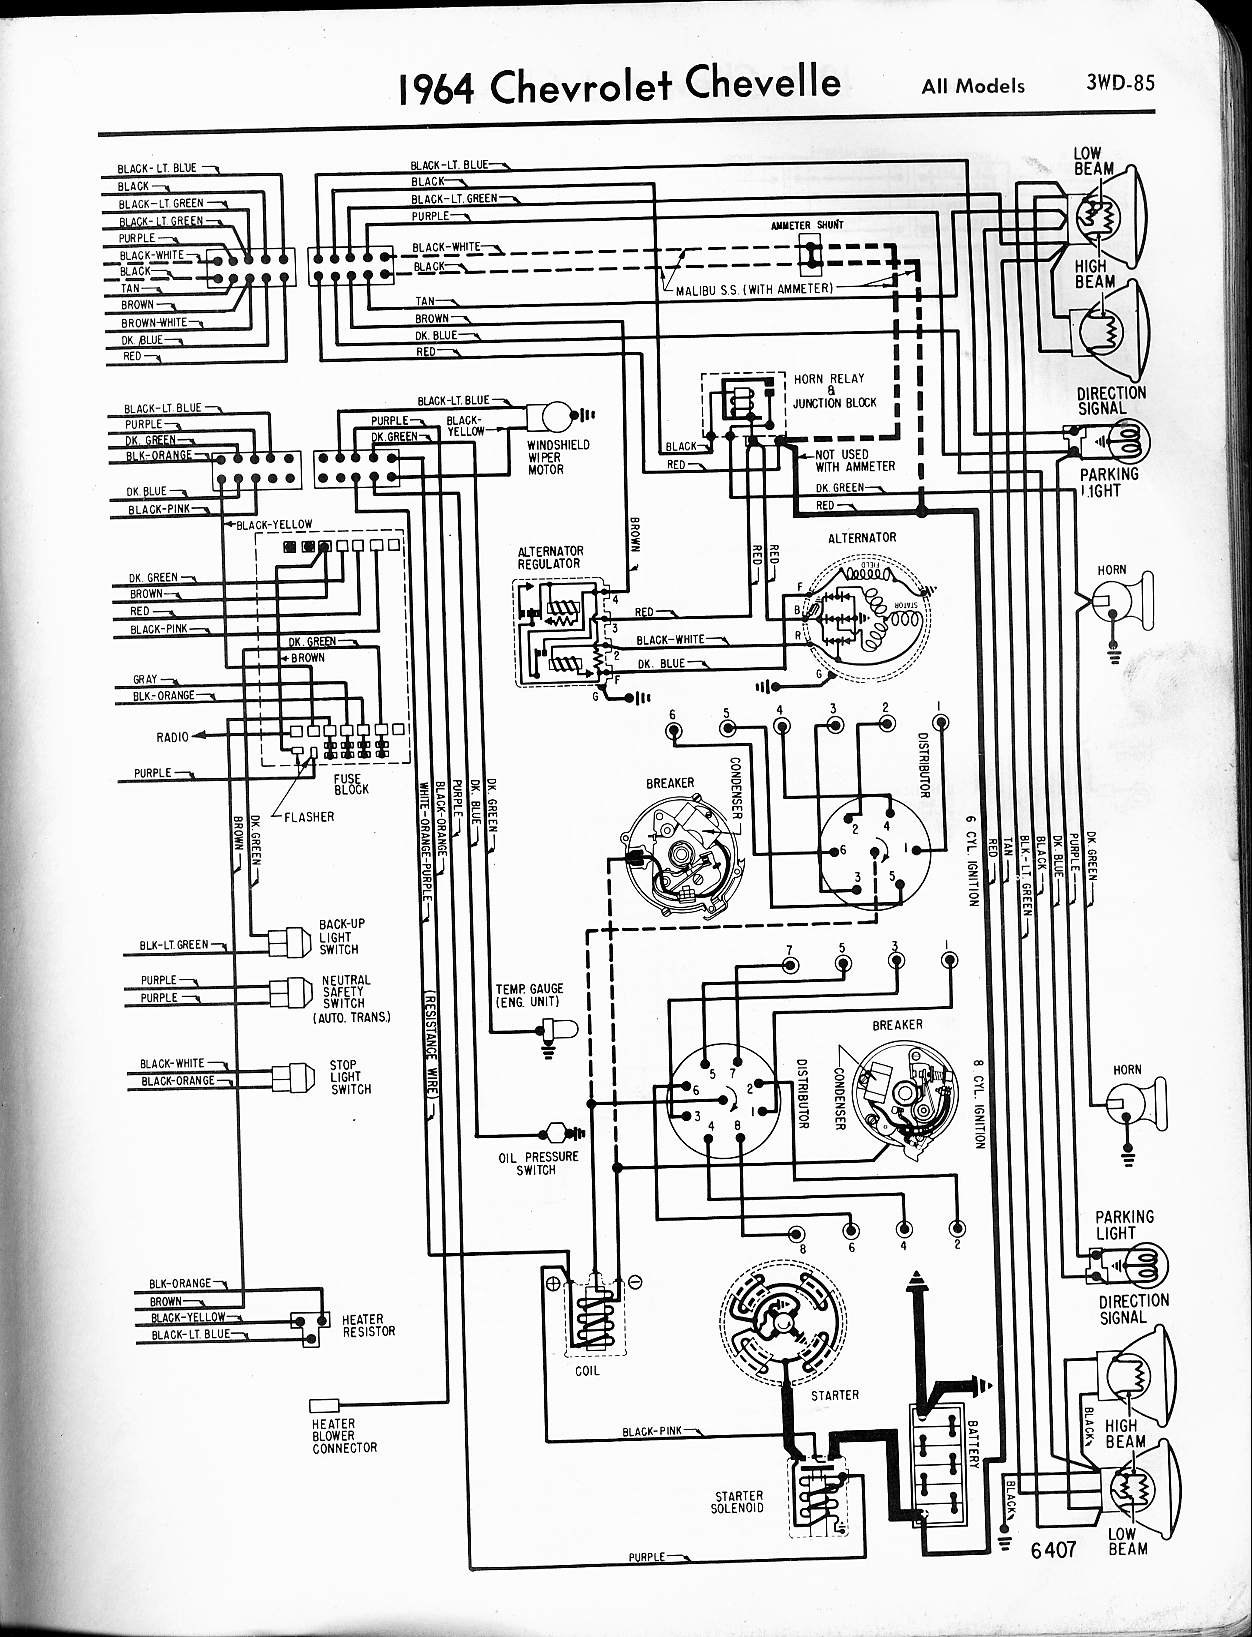 1966 corvette turn signal wiring diagram pir 1964 c5 schwabenschamanen de chevelle console name rh 13 5 18 art brut creation starter stingray